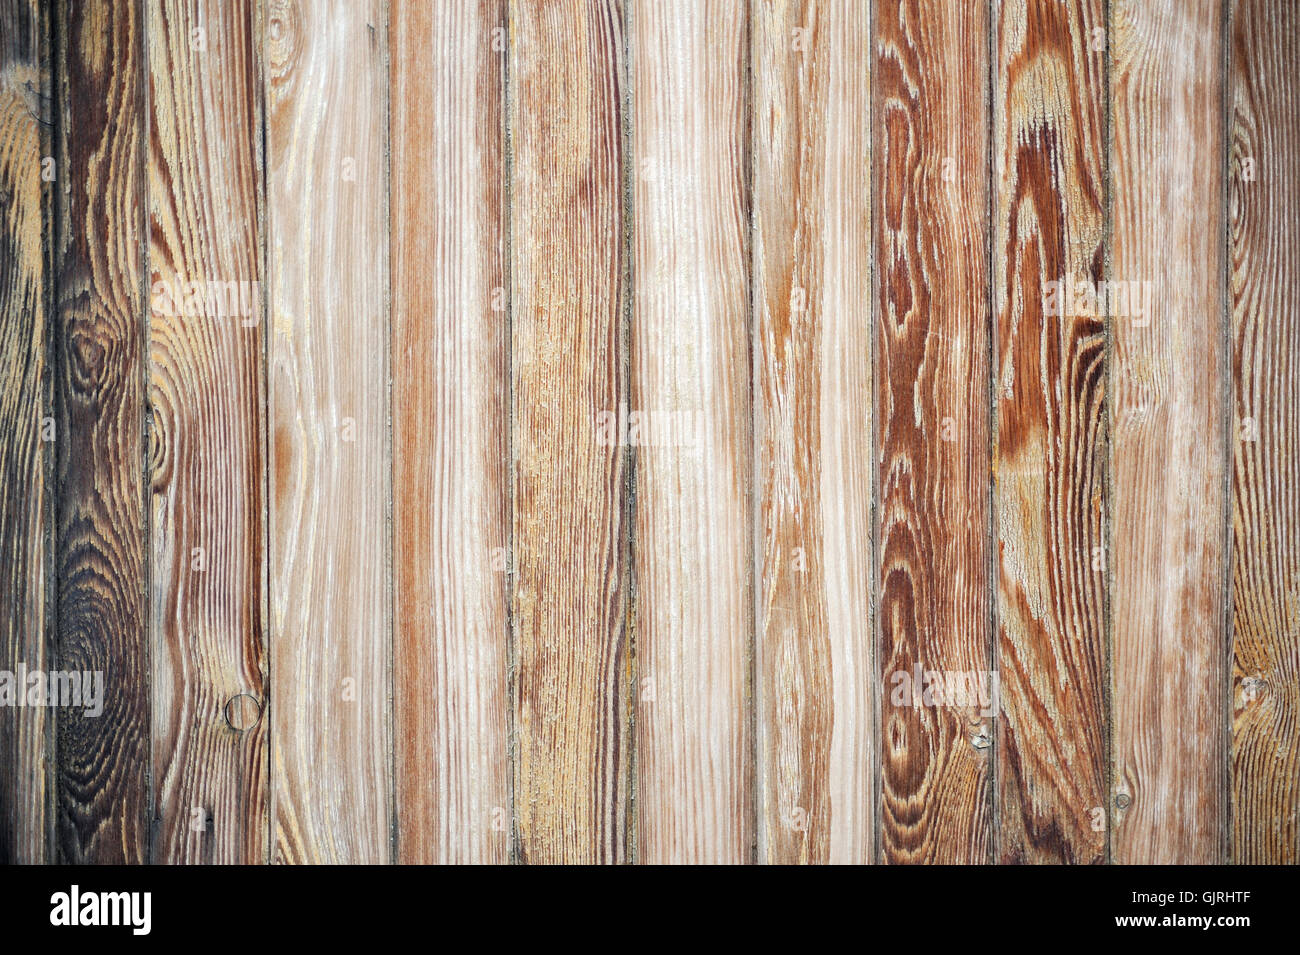 wood wall planks - Stock Image